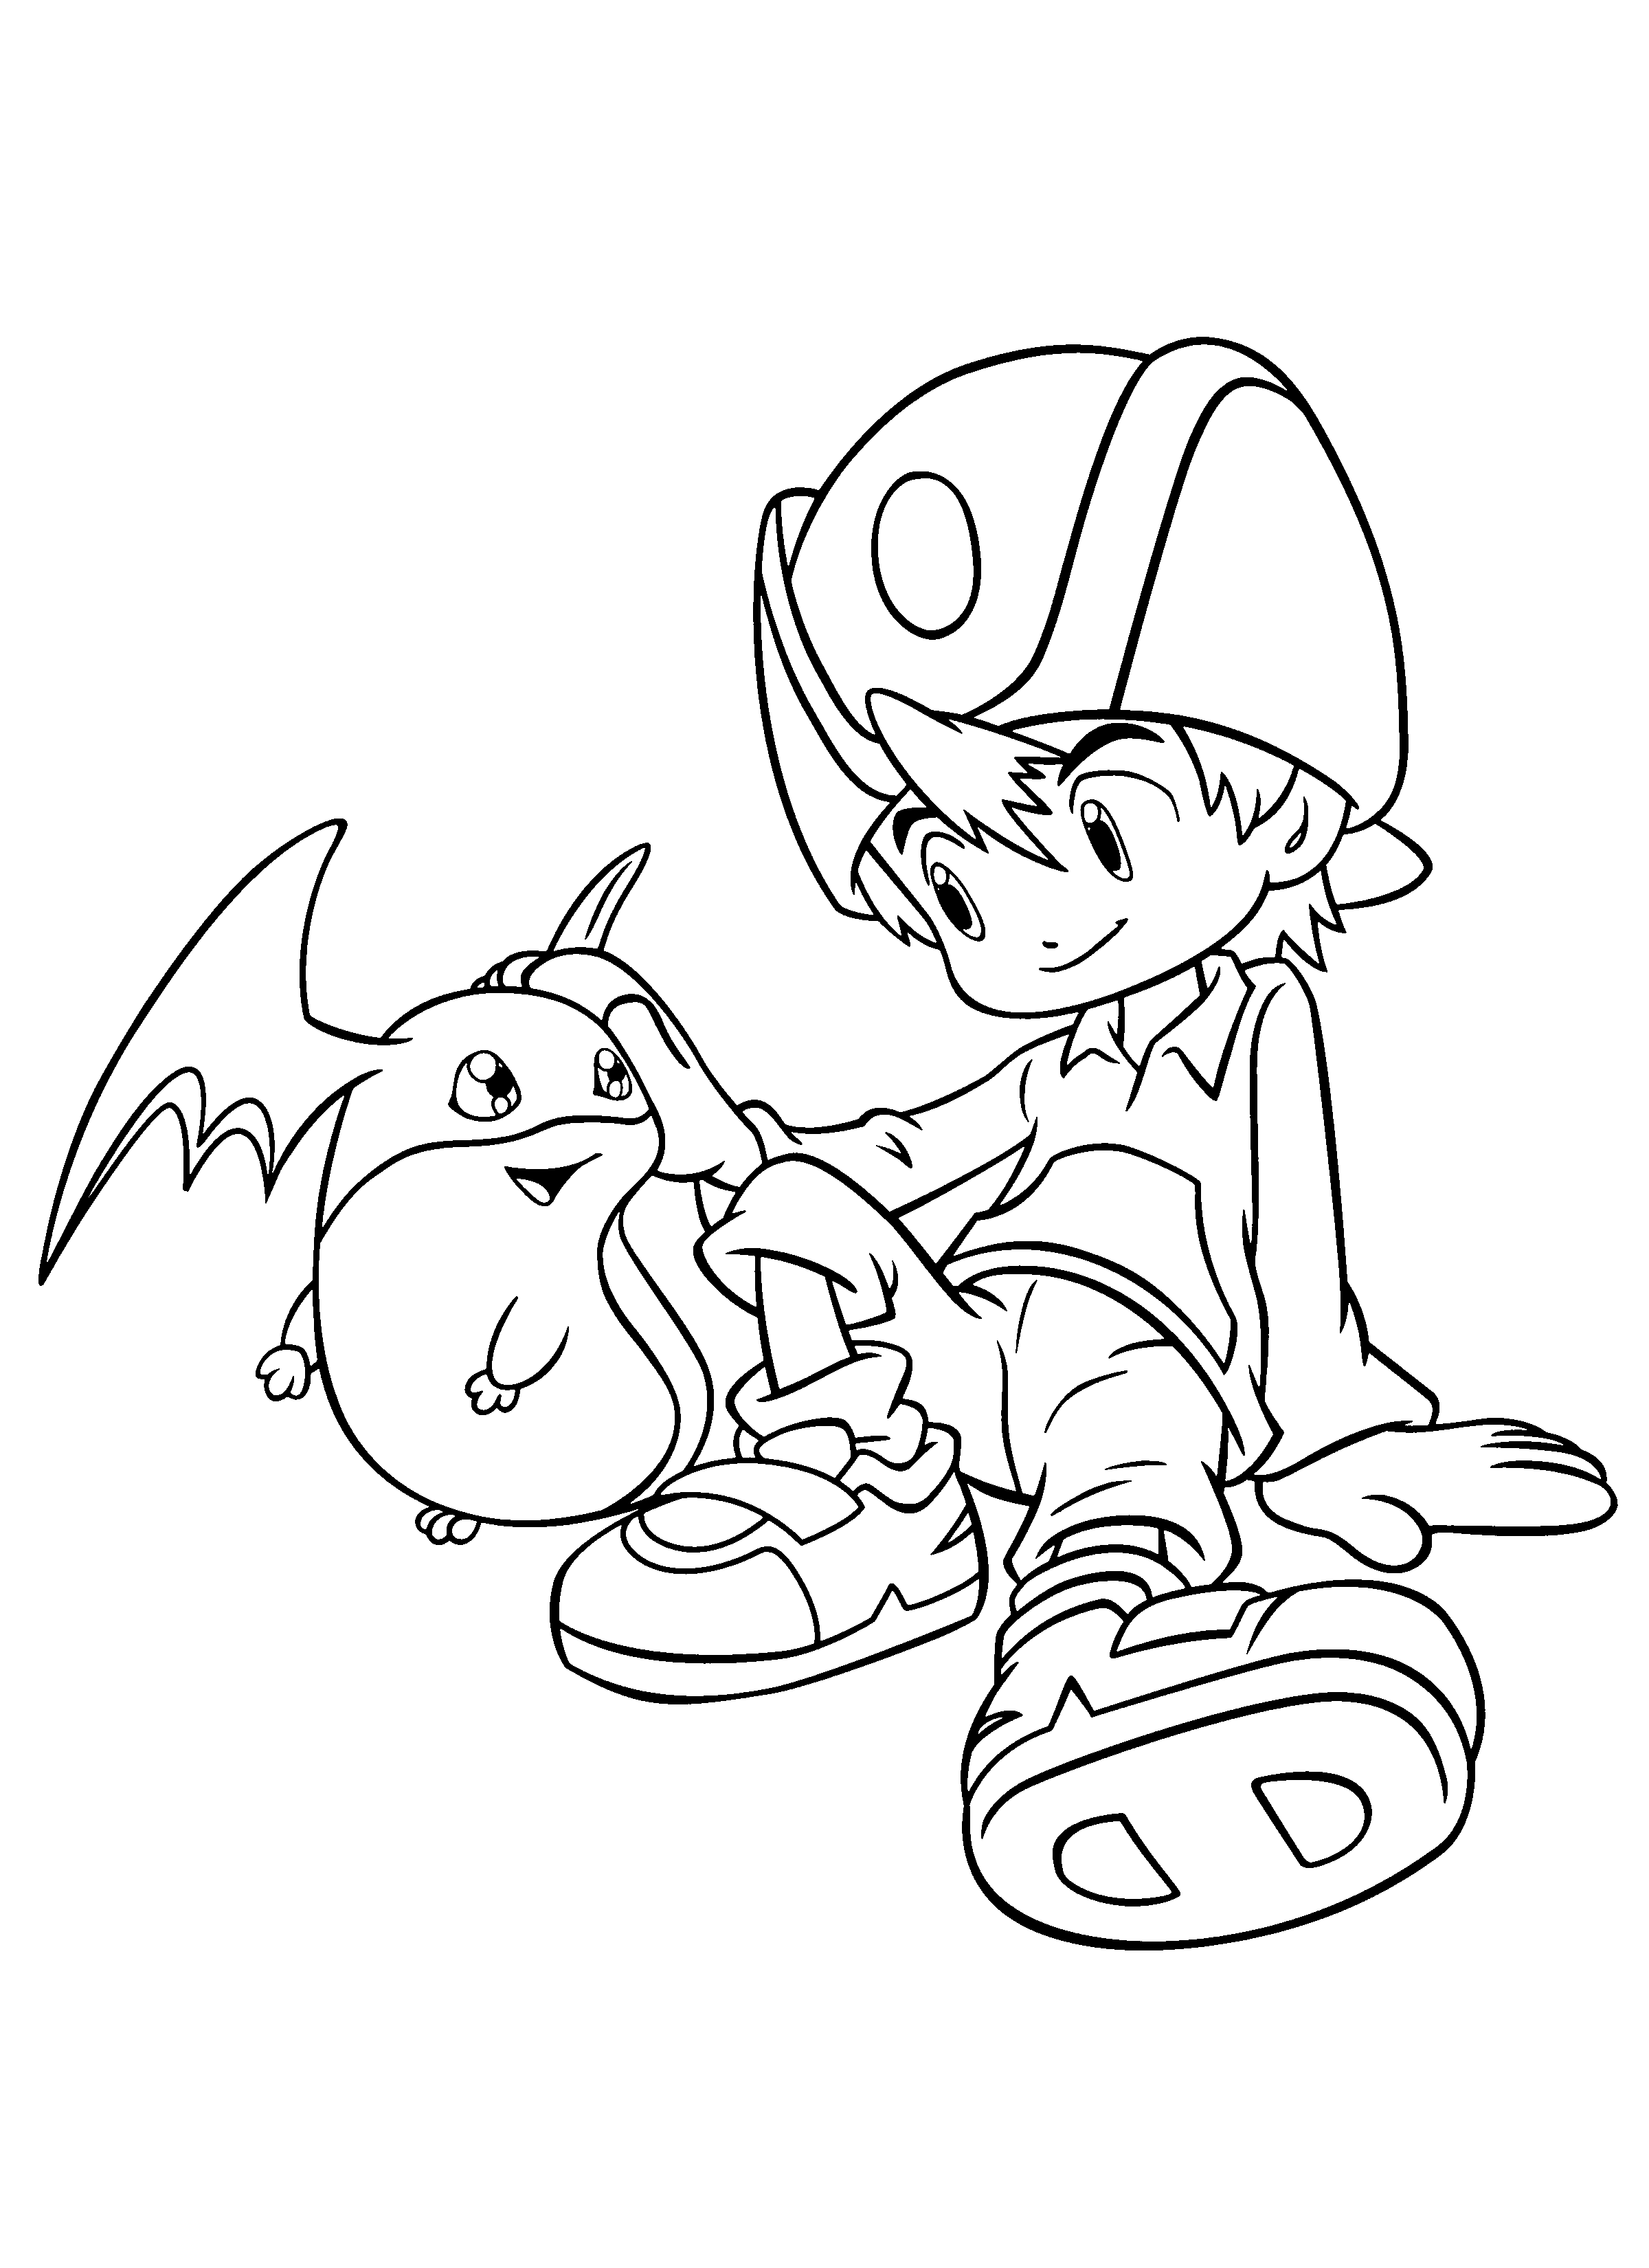 Coloring Page Digimon Coloring Pages 183 Cute Coloring Pages Coloring Pages Digimon